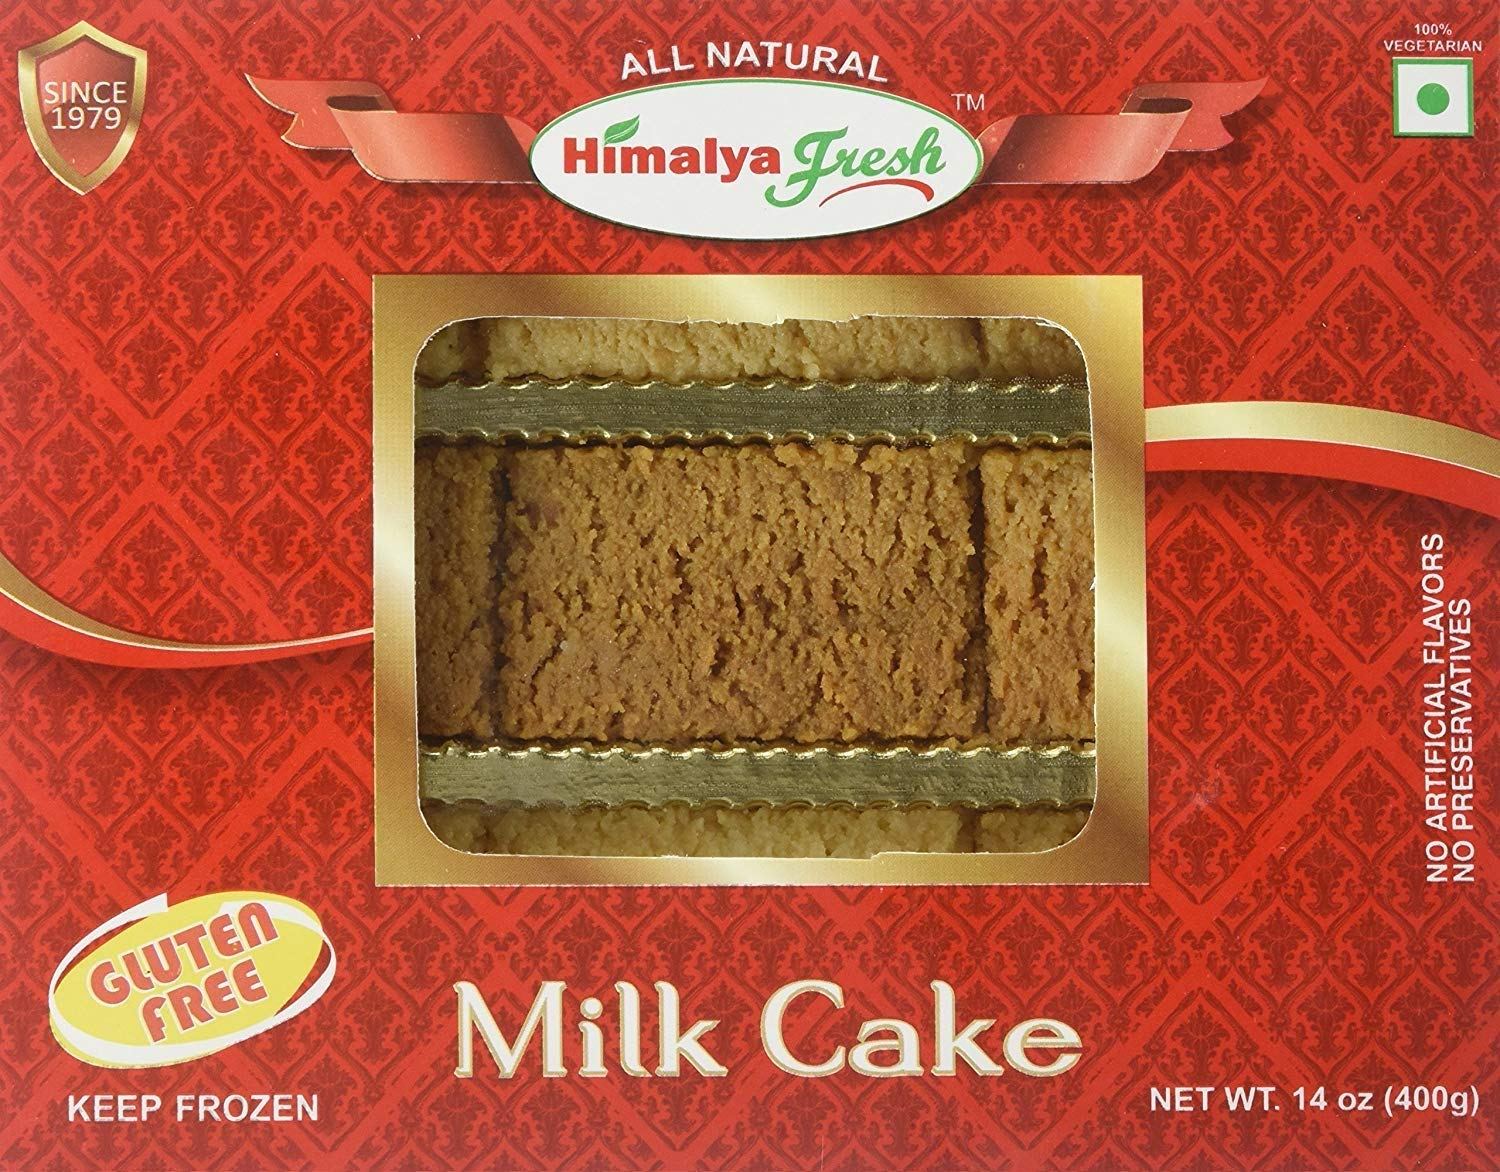 HIMALYA FRESH Milk Cake 14 oz - Premium Authentic, Luxurious Sweet Made With Pure Grass fed water Buffalo Milk and sugar (just two ingredients) - No Fillers Or Preservatives (5 Boxes) by Himalya Fresh